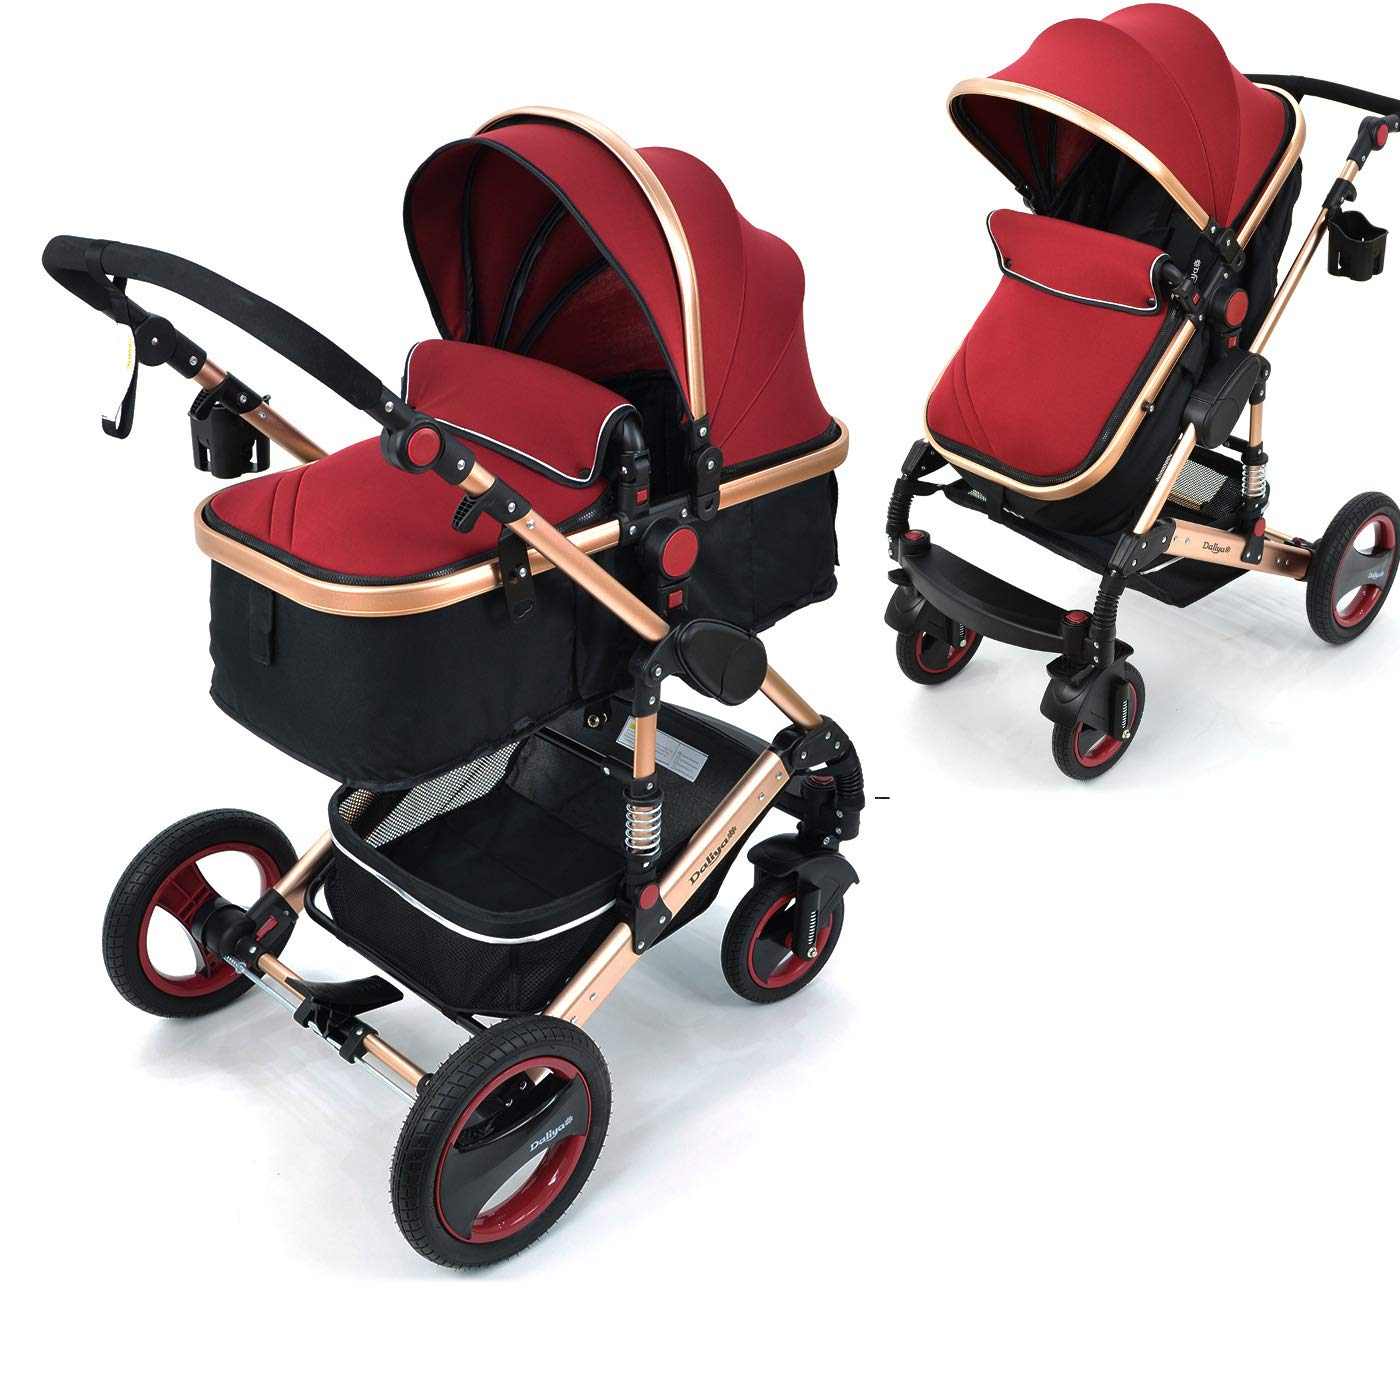 Buddy Jet Footmuff For Red Kite Push Me Fusion Travel System Geo